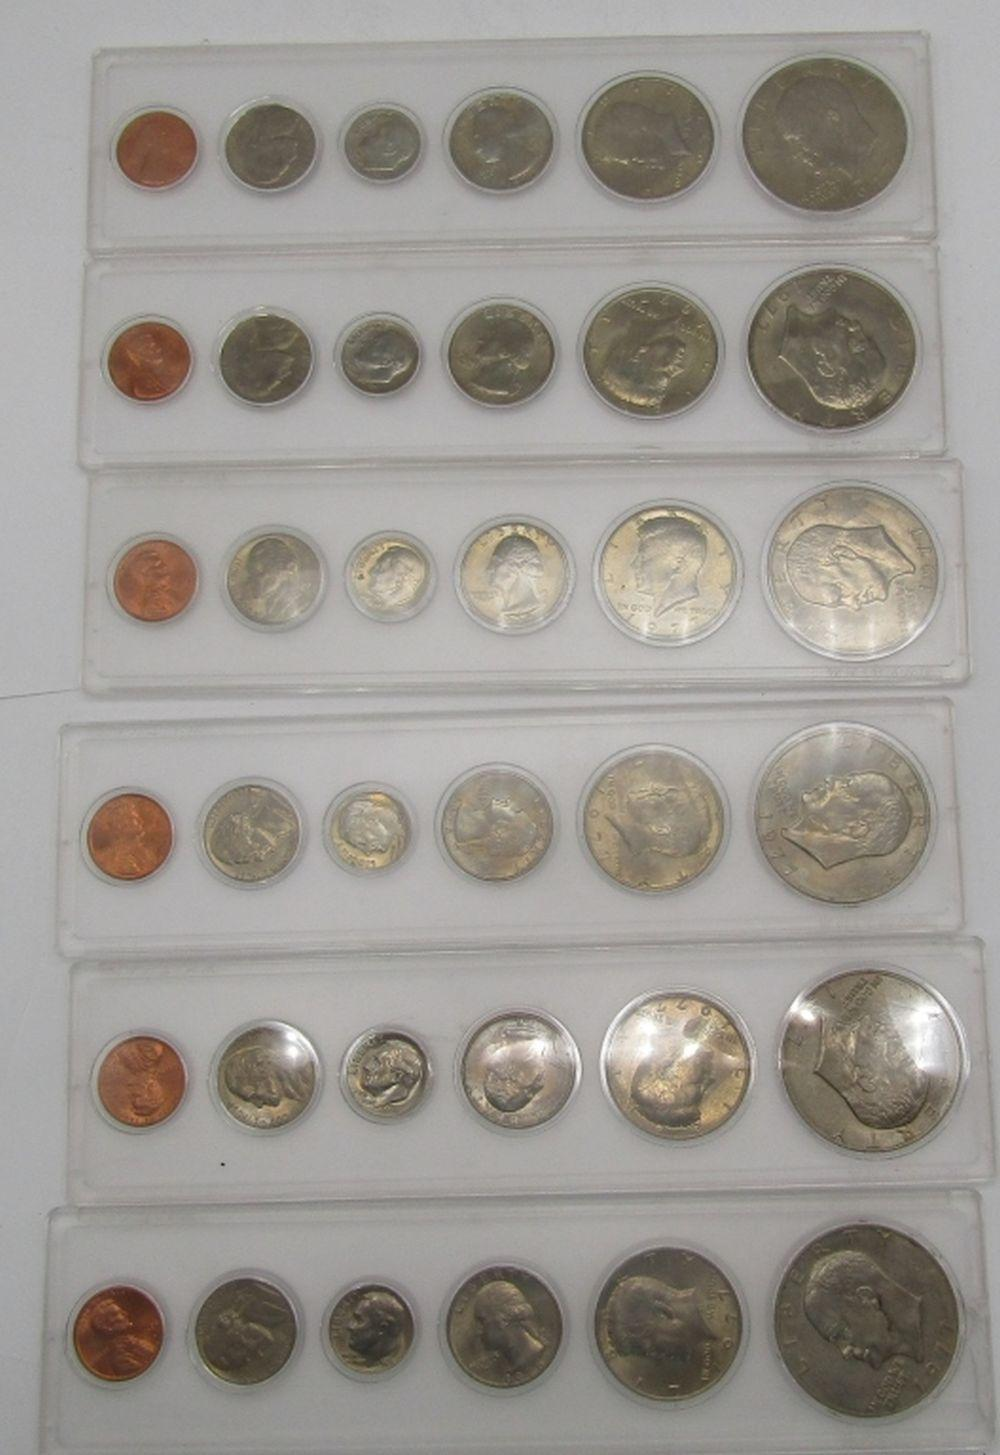 6- YEAR SETS of 1977/1978 COINS